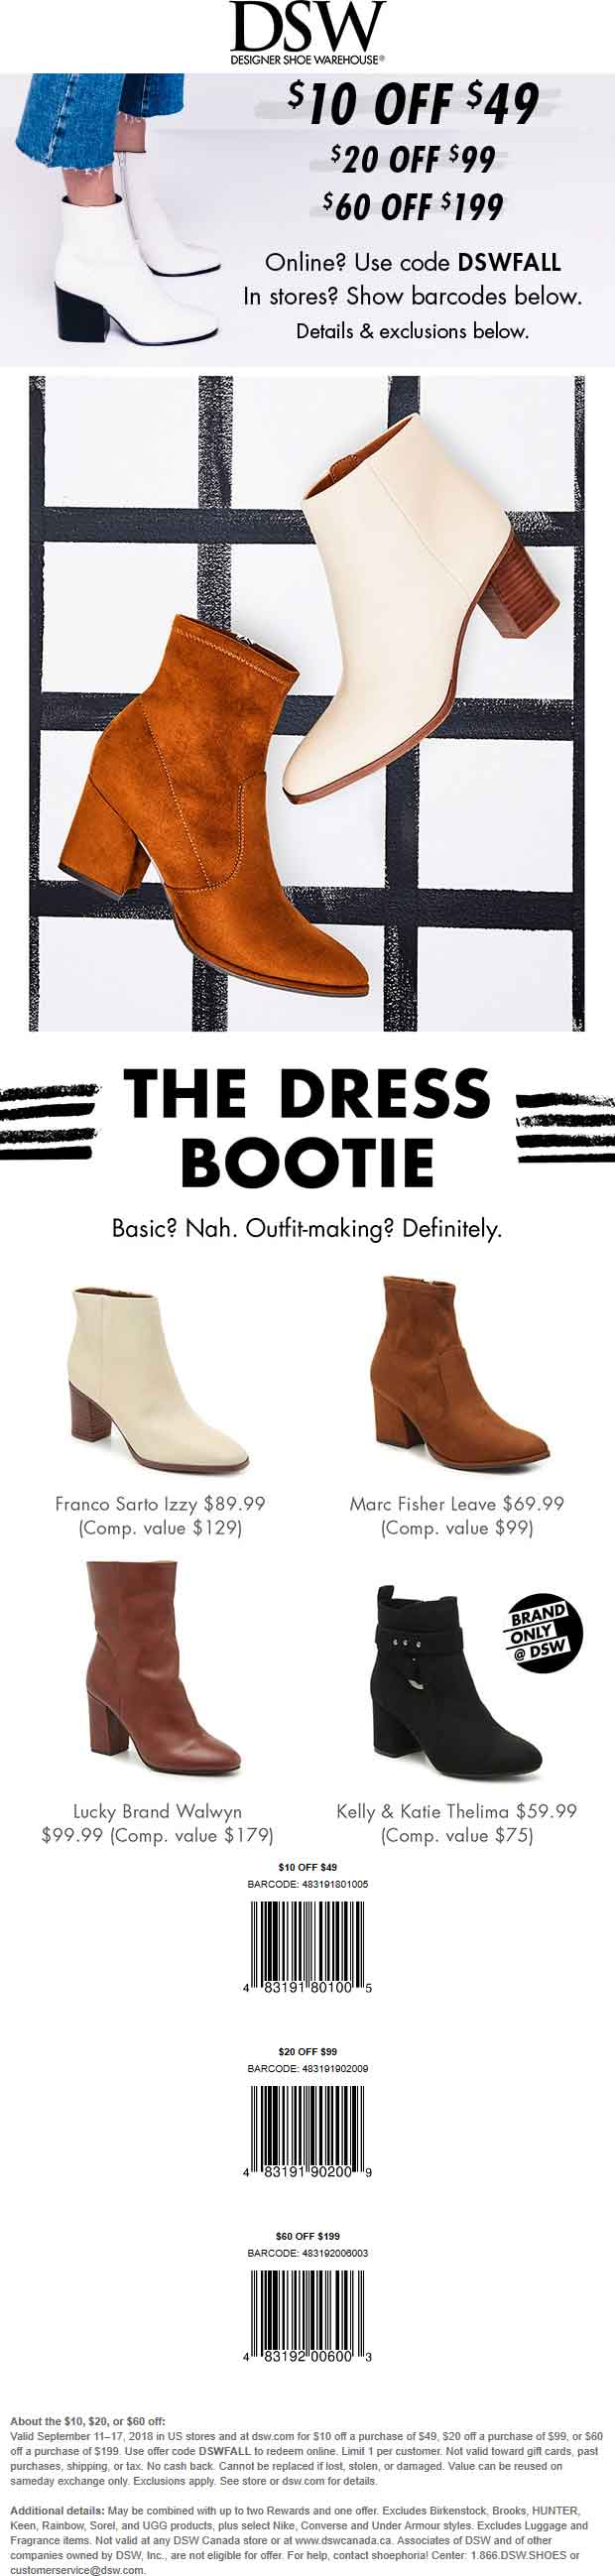 DSW coupons & promo code for [April 2020]